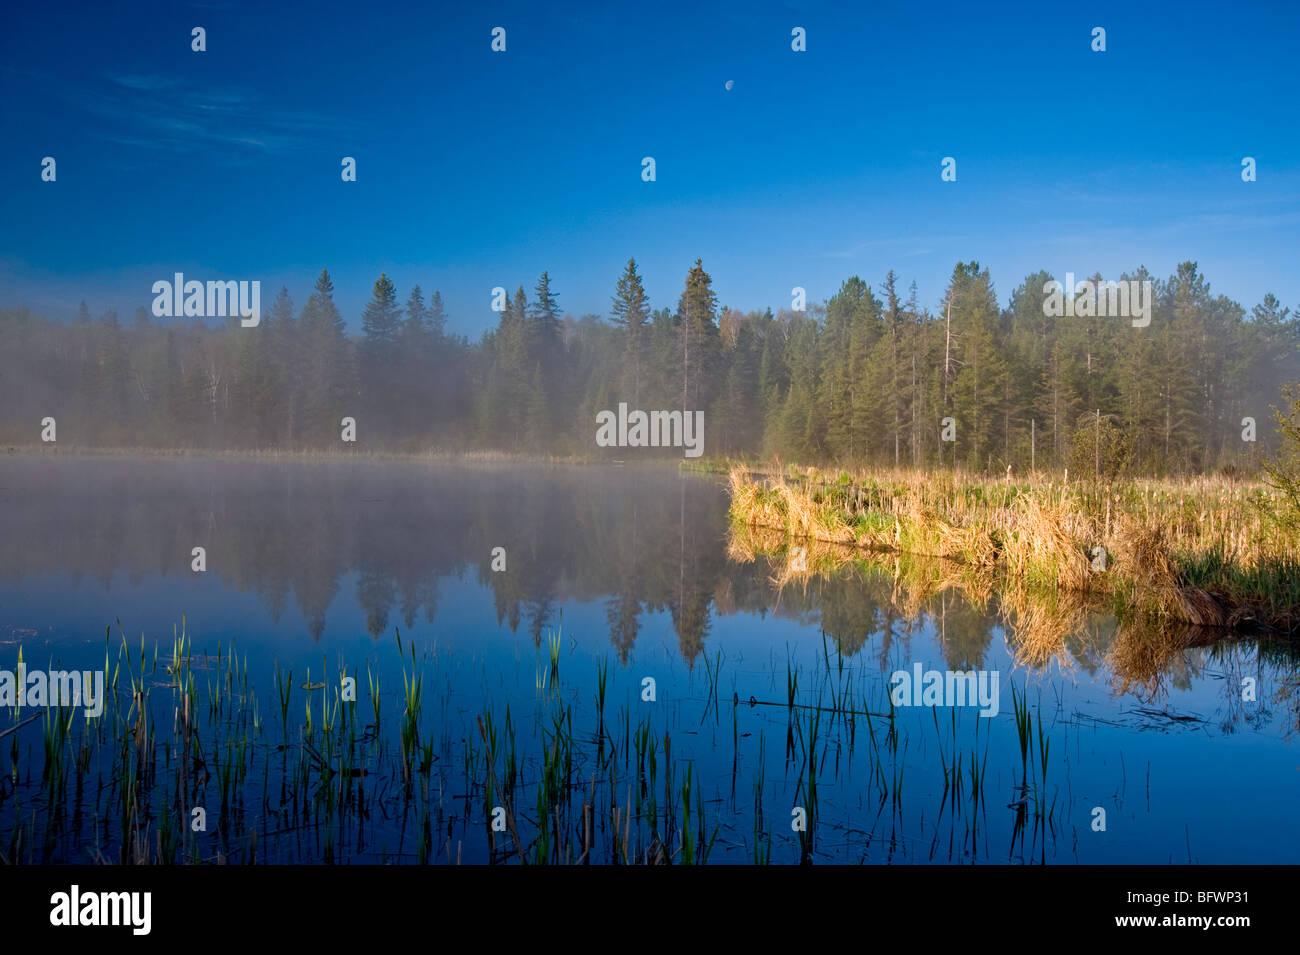 Morning mists in beaver pond, Greater Sudbury, Ontario, Canada - Stock Image